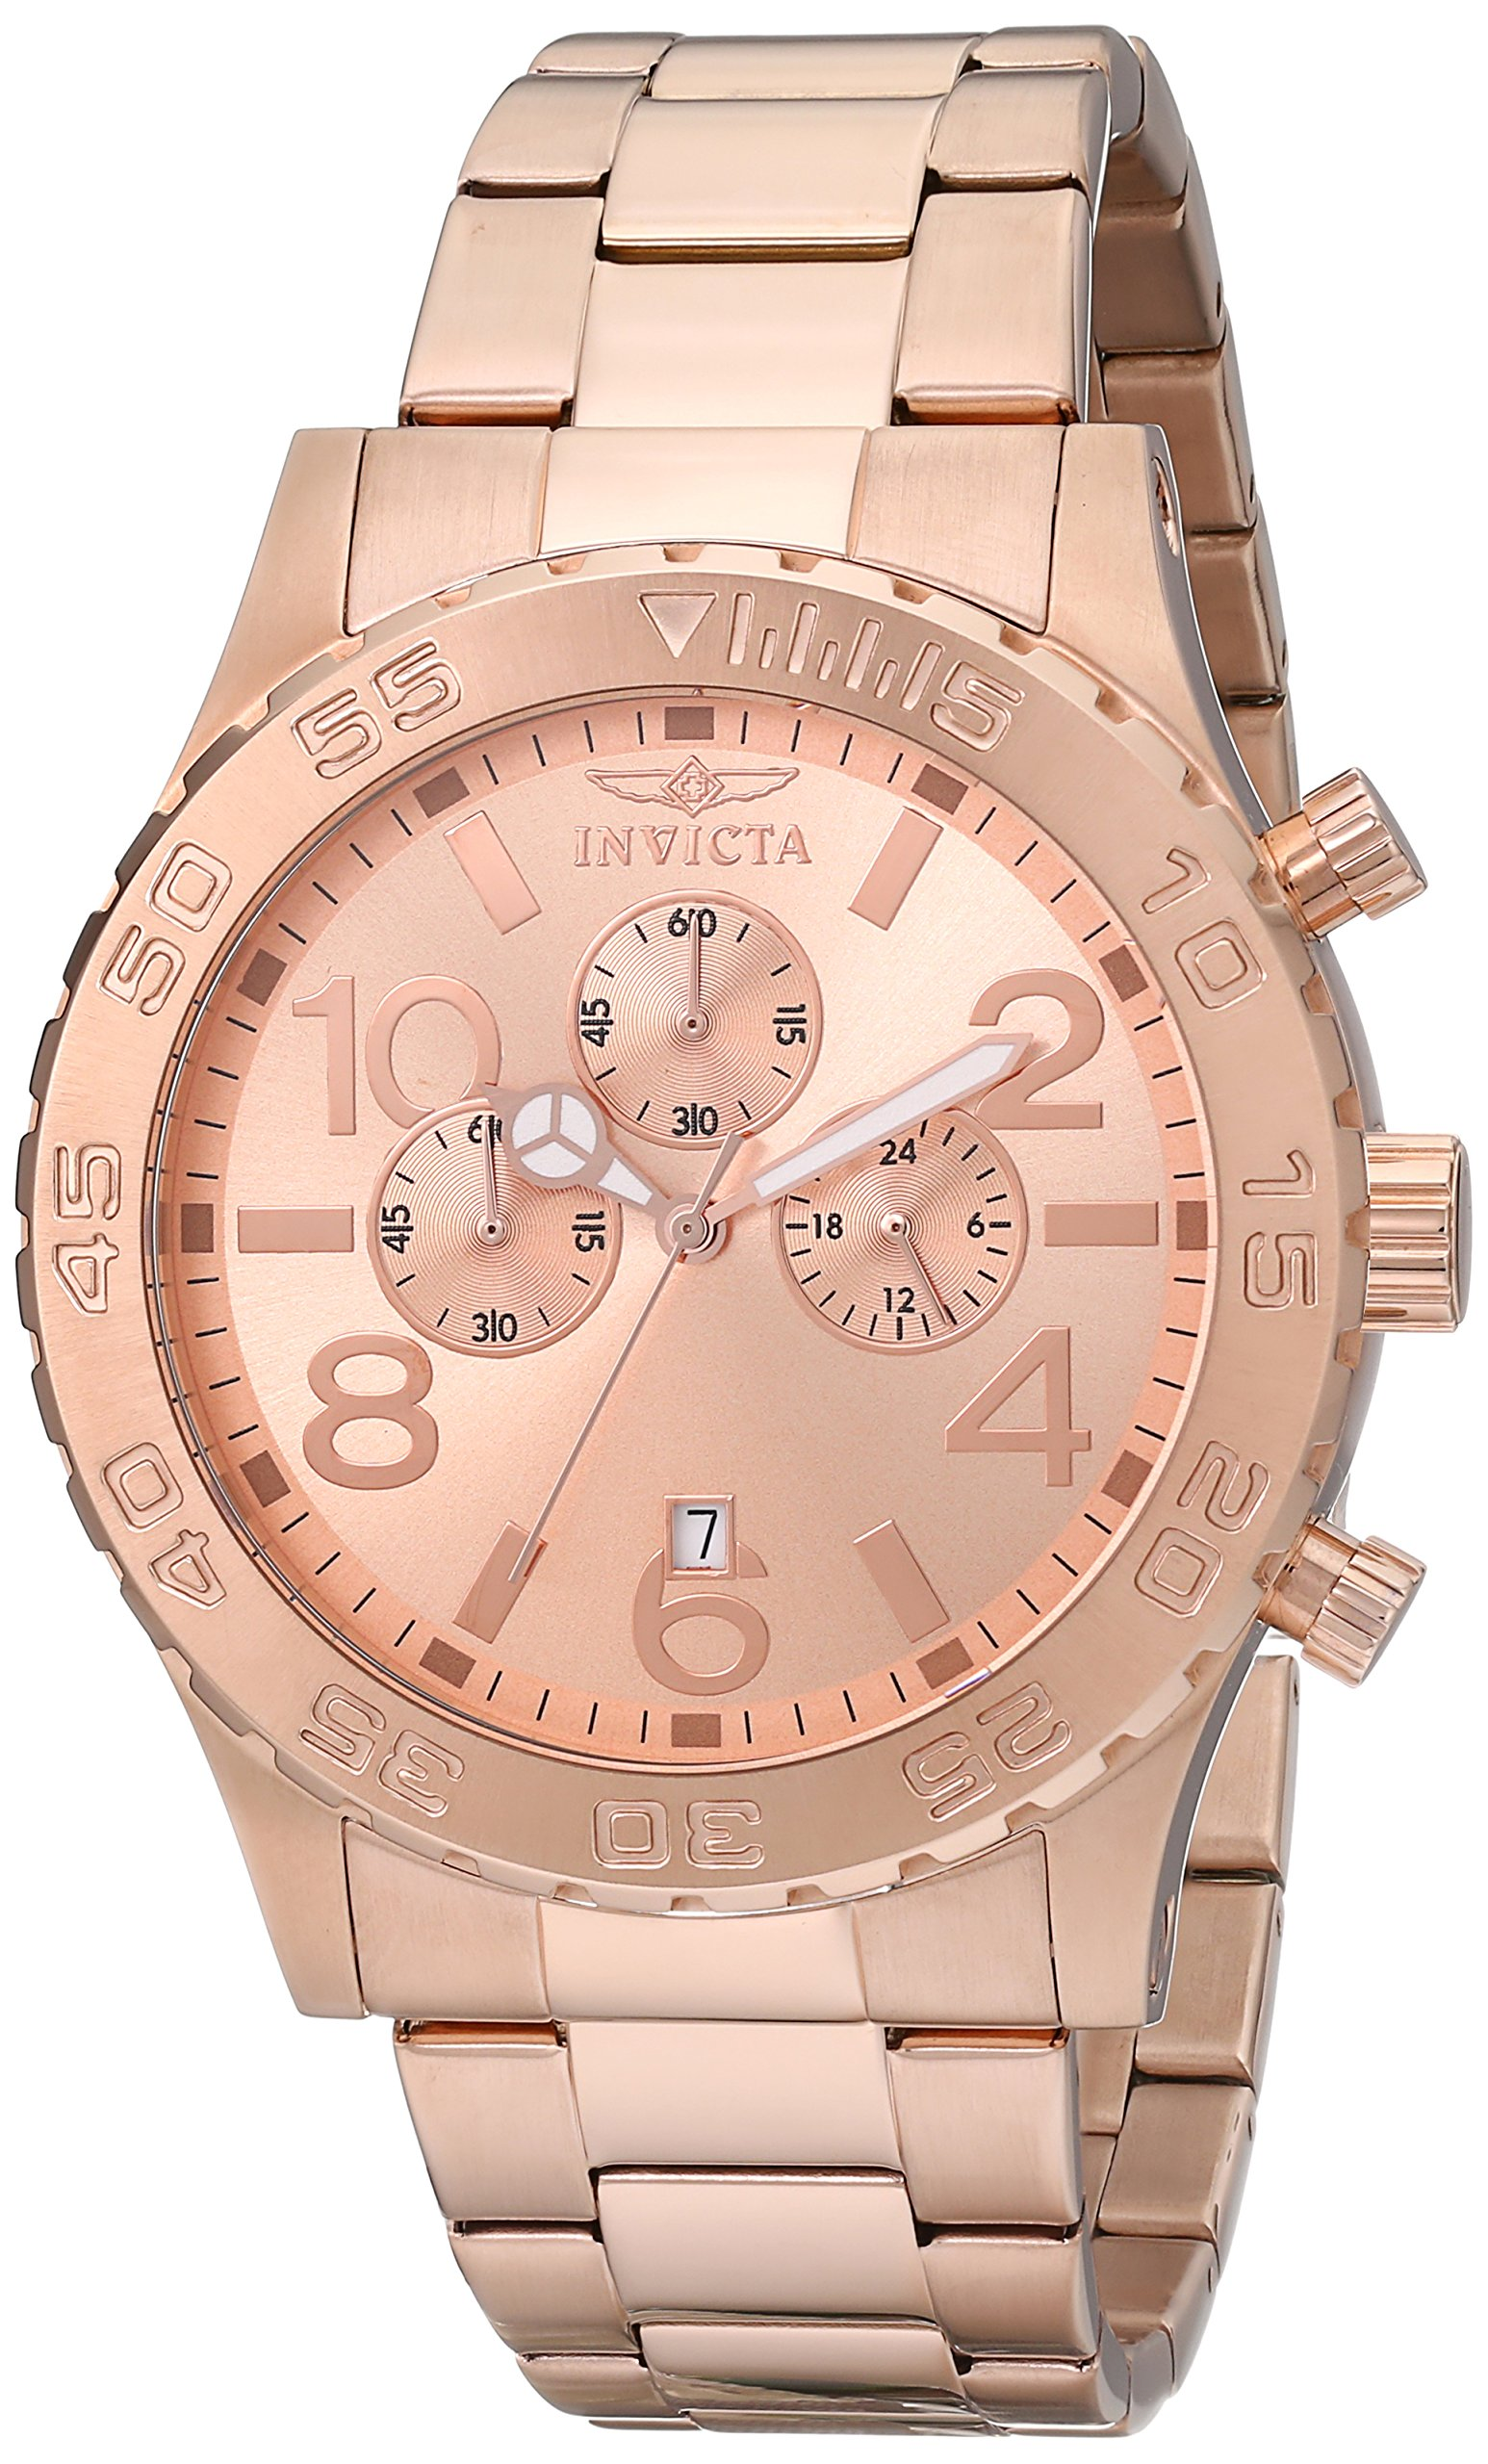 Invicta Men's 1271 Specialty Chronograph Rose Dial 18k Rose Gold Ion-Plated Watch by Invicta